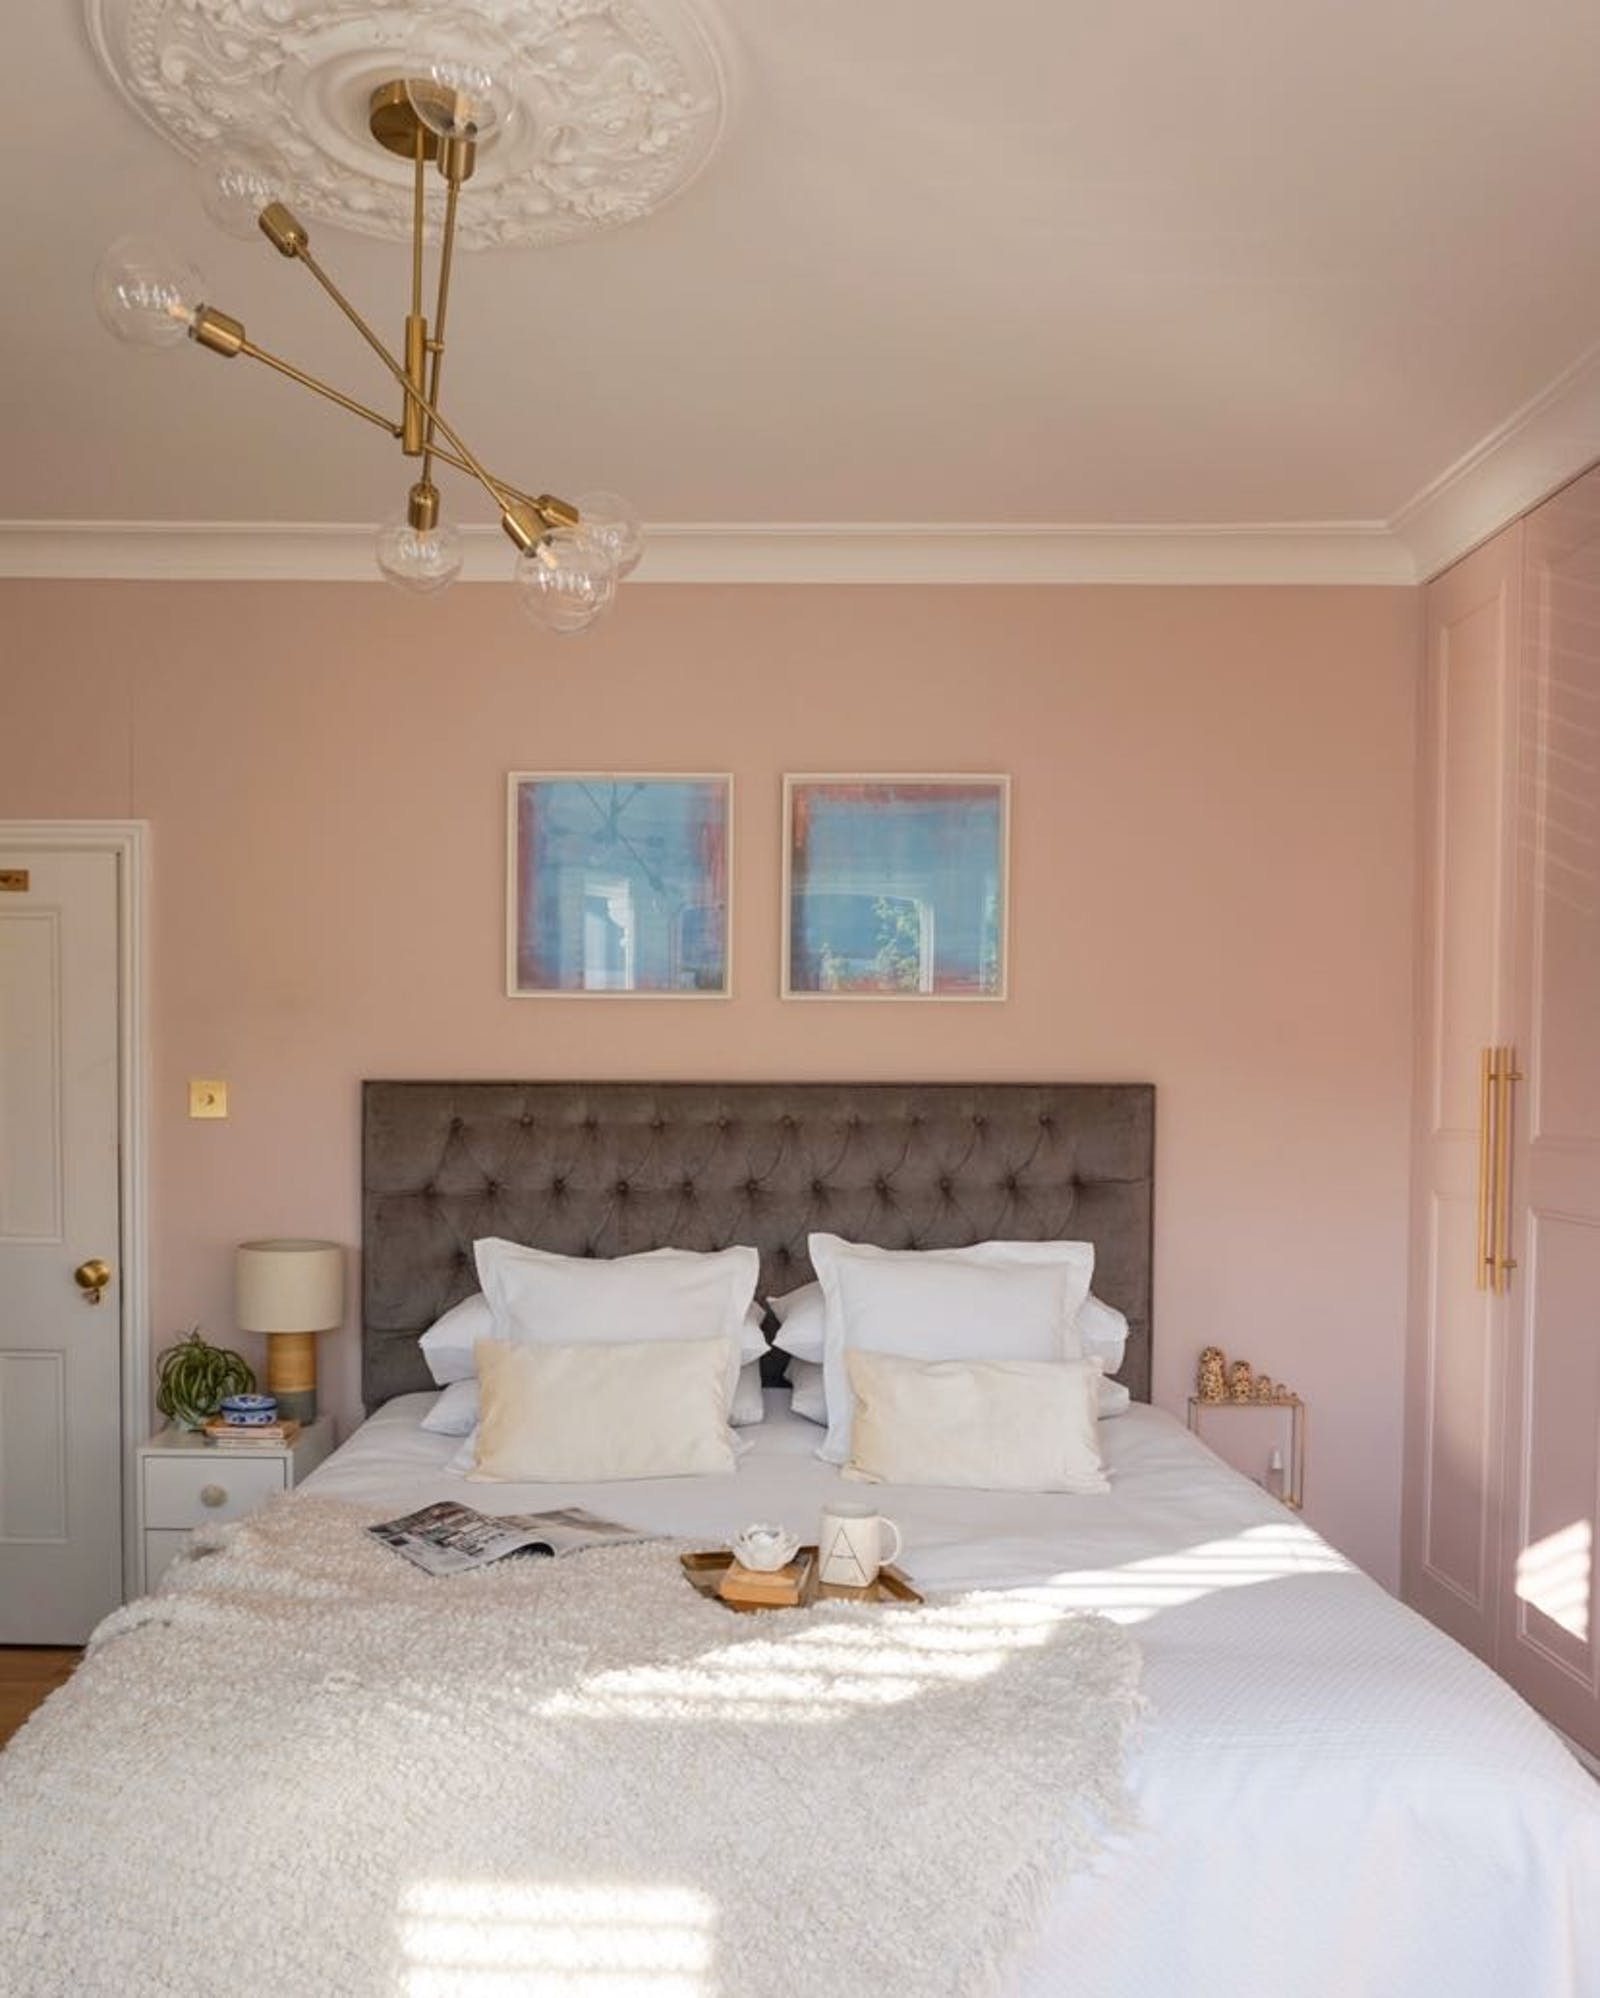 Spacious master bedroom painted in pink